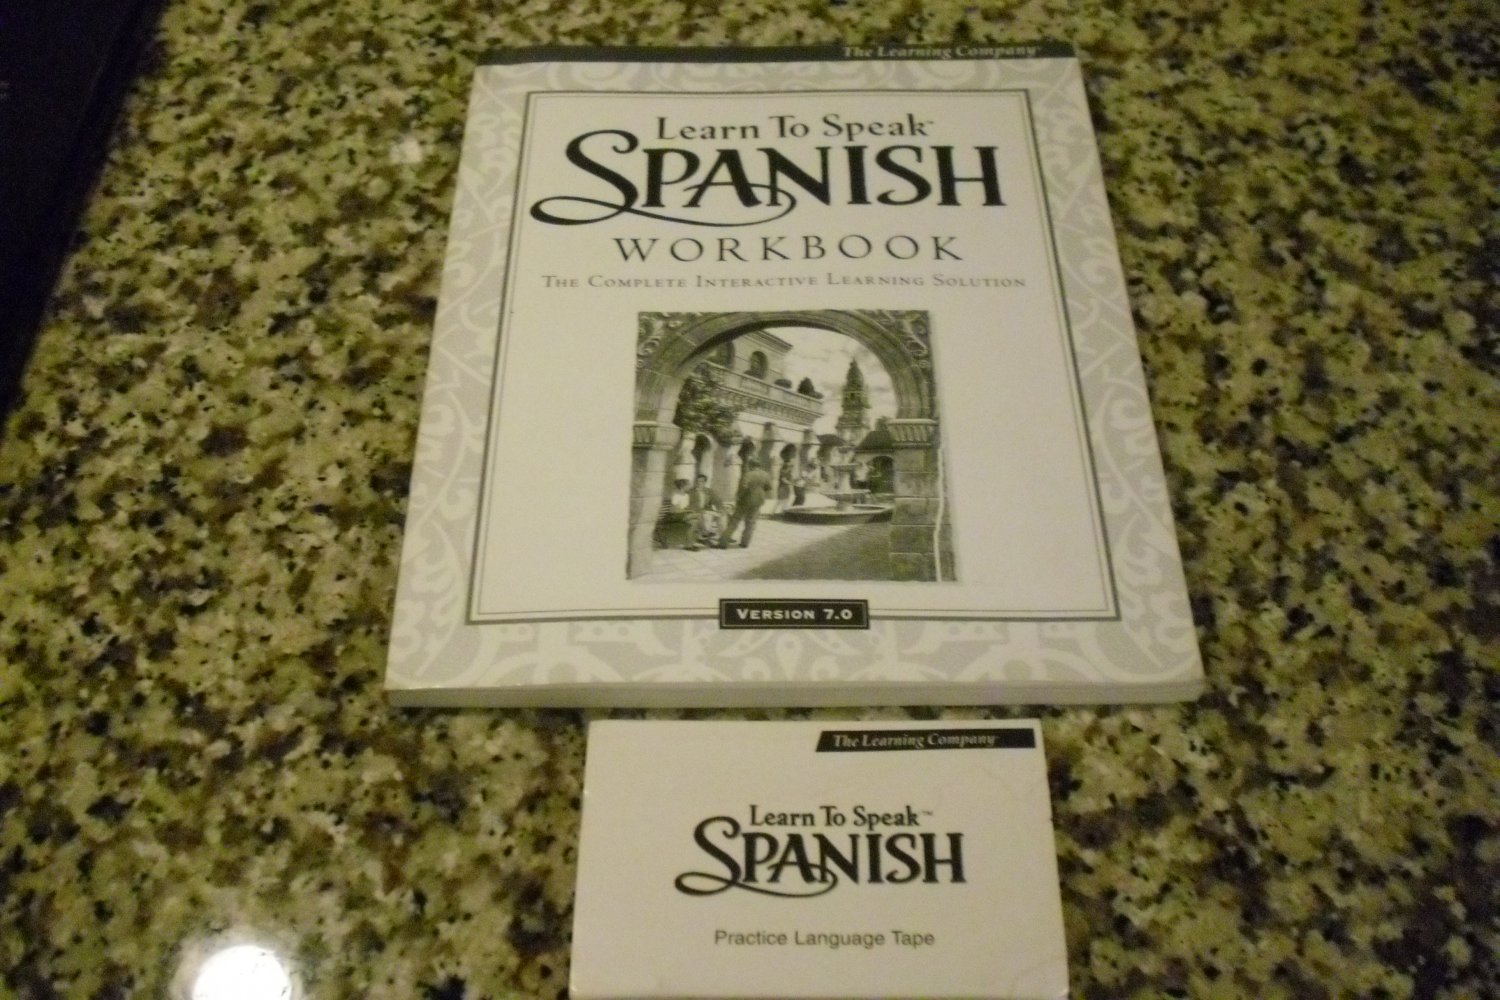 Learn to Speak Spanish Workbook Version 7.0 (1998) Paperback � by Ph. D And Melis, M.A. Binkowski